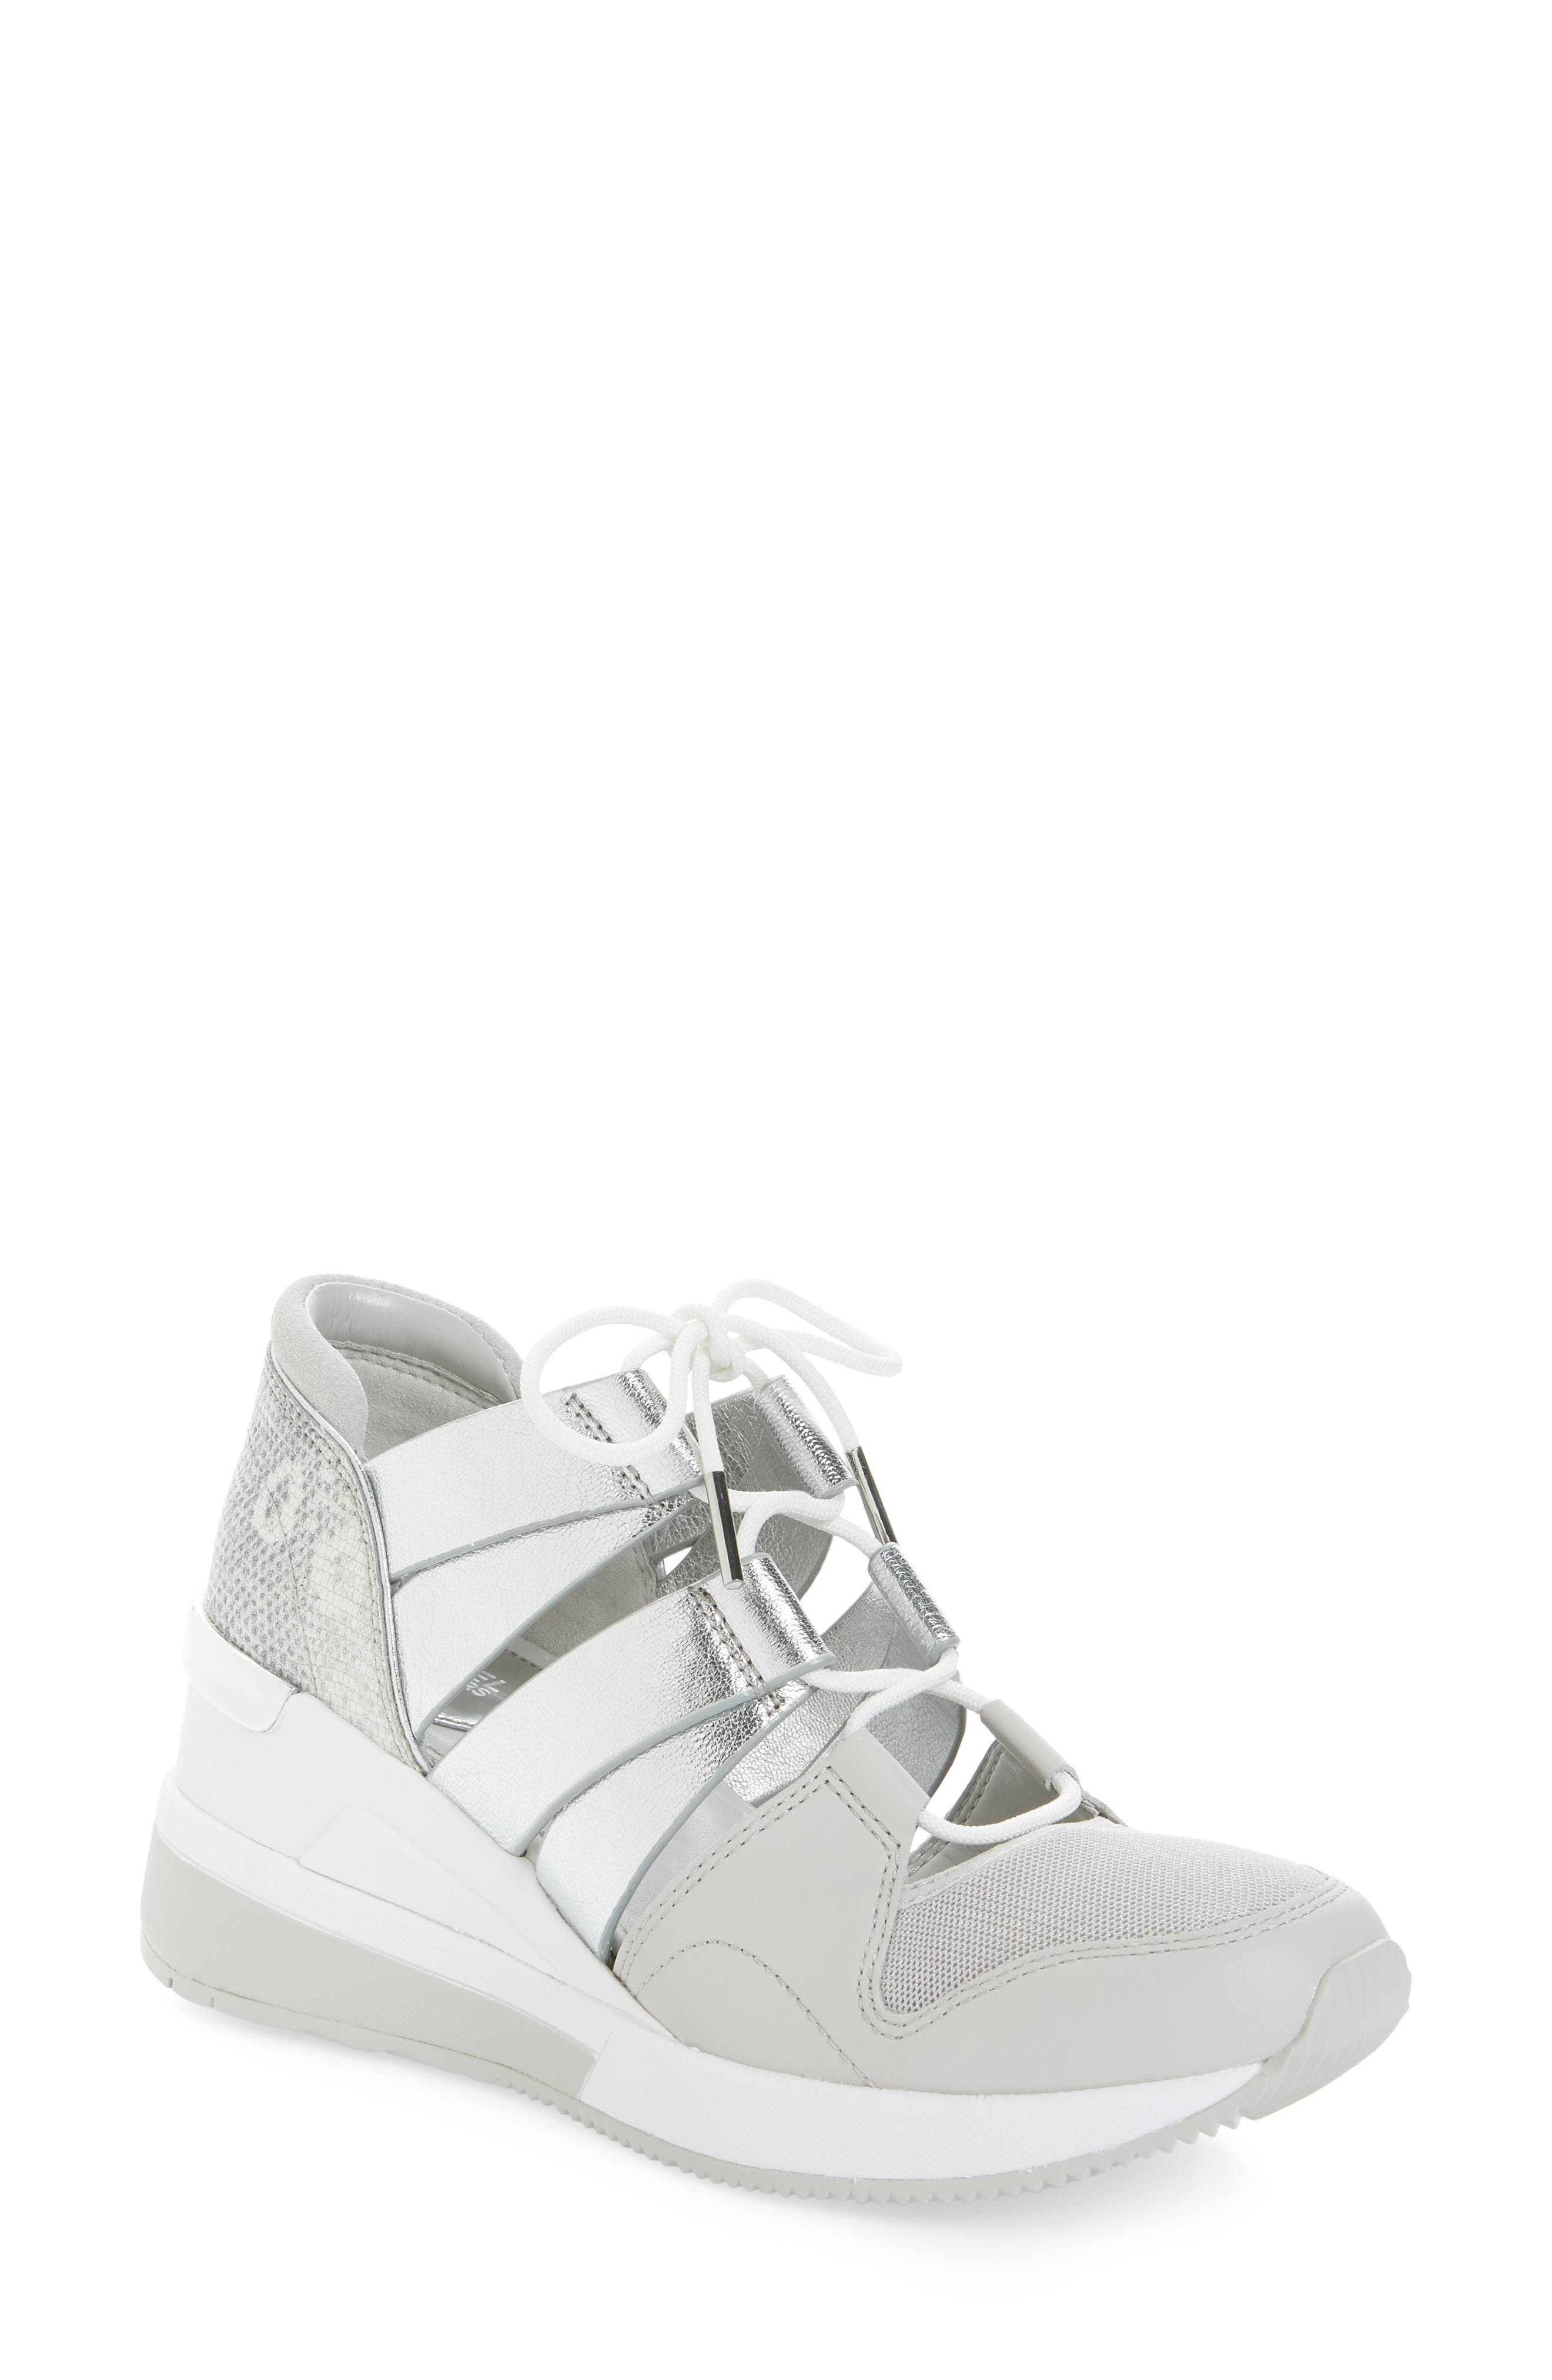 MICHAEL MICHAEL KORS Beckett Sneaker, Main, color, 040